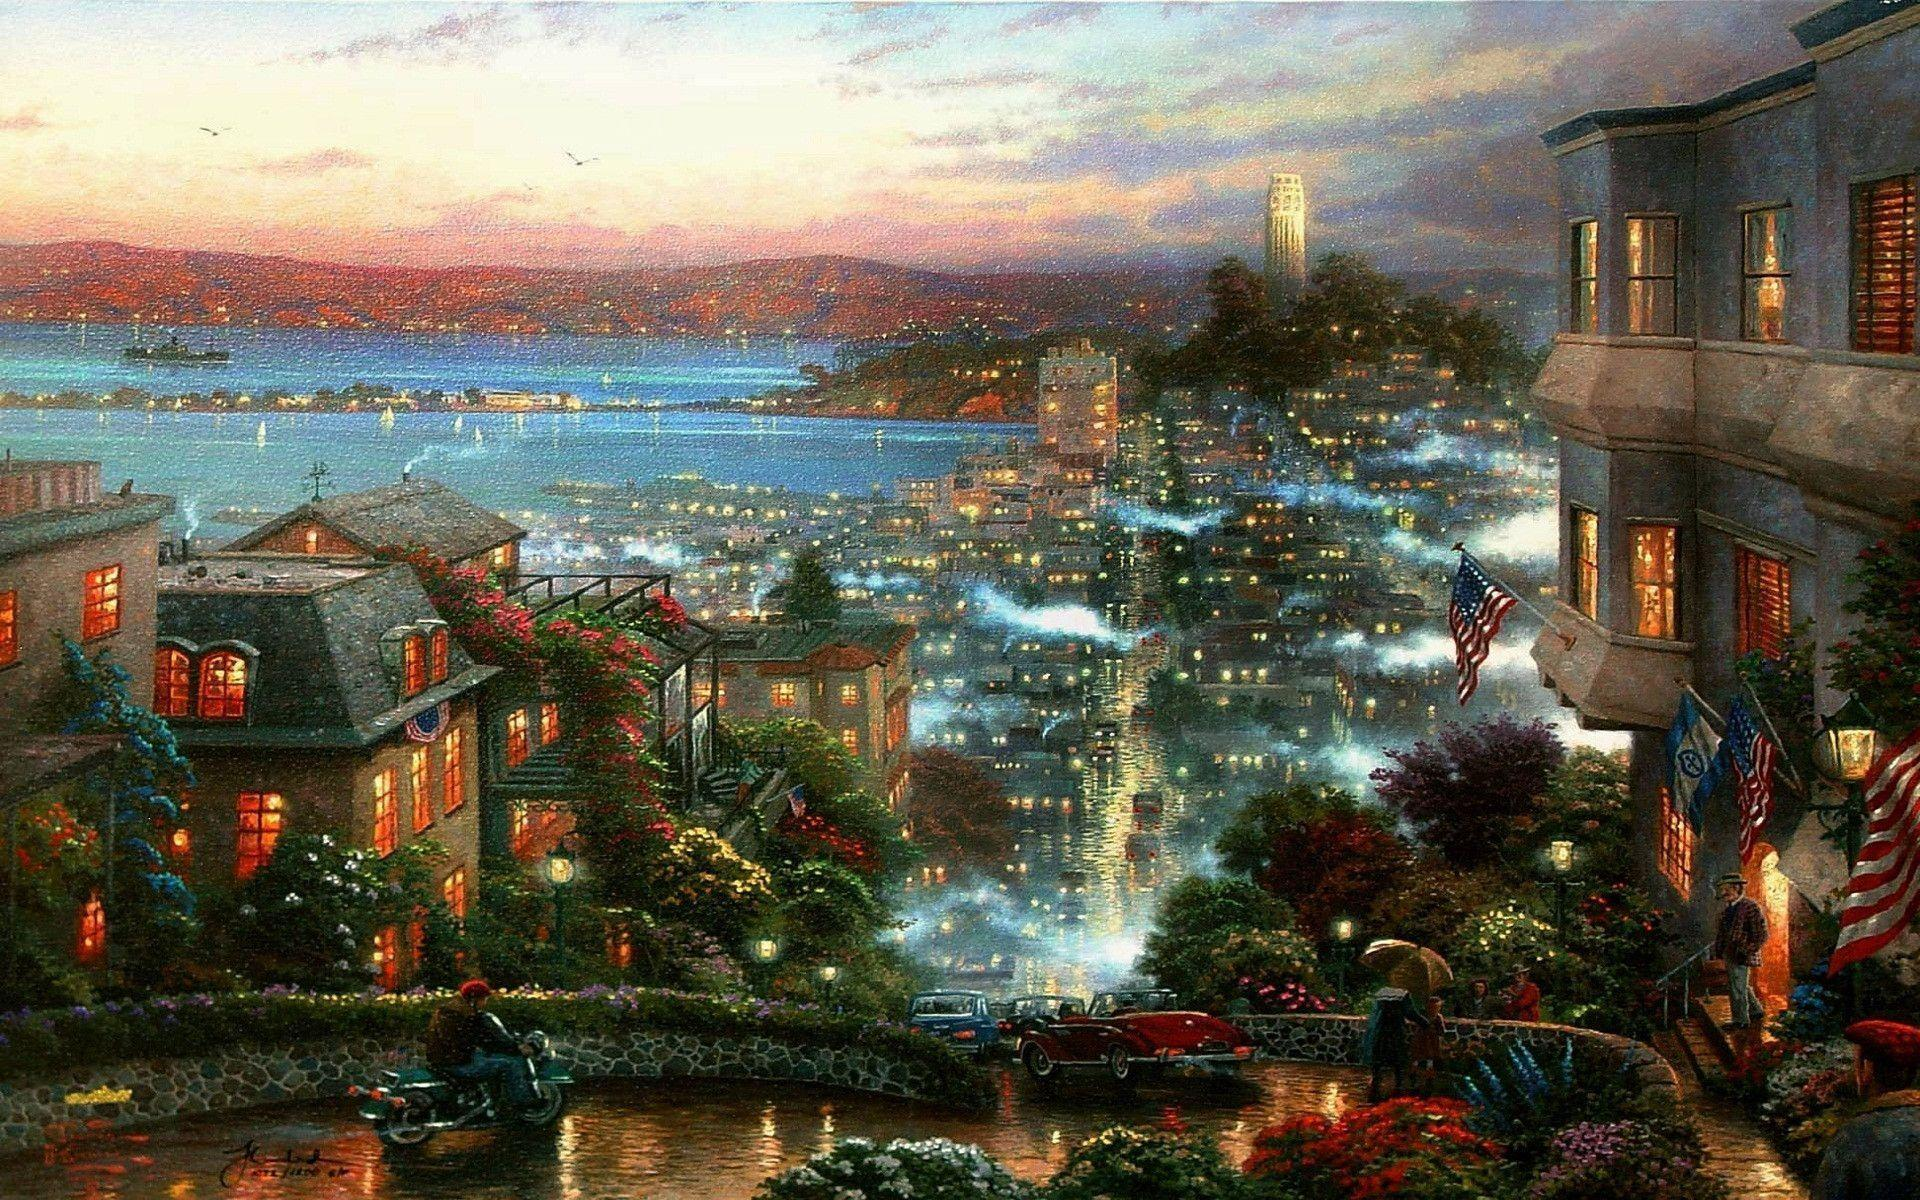 thomas kinkade wallpaper 1920x1080 - photo #21